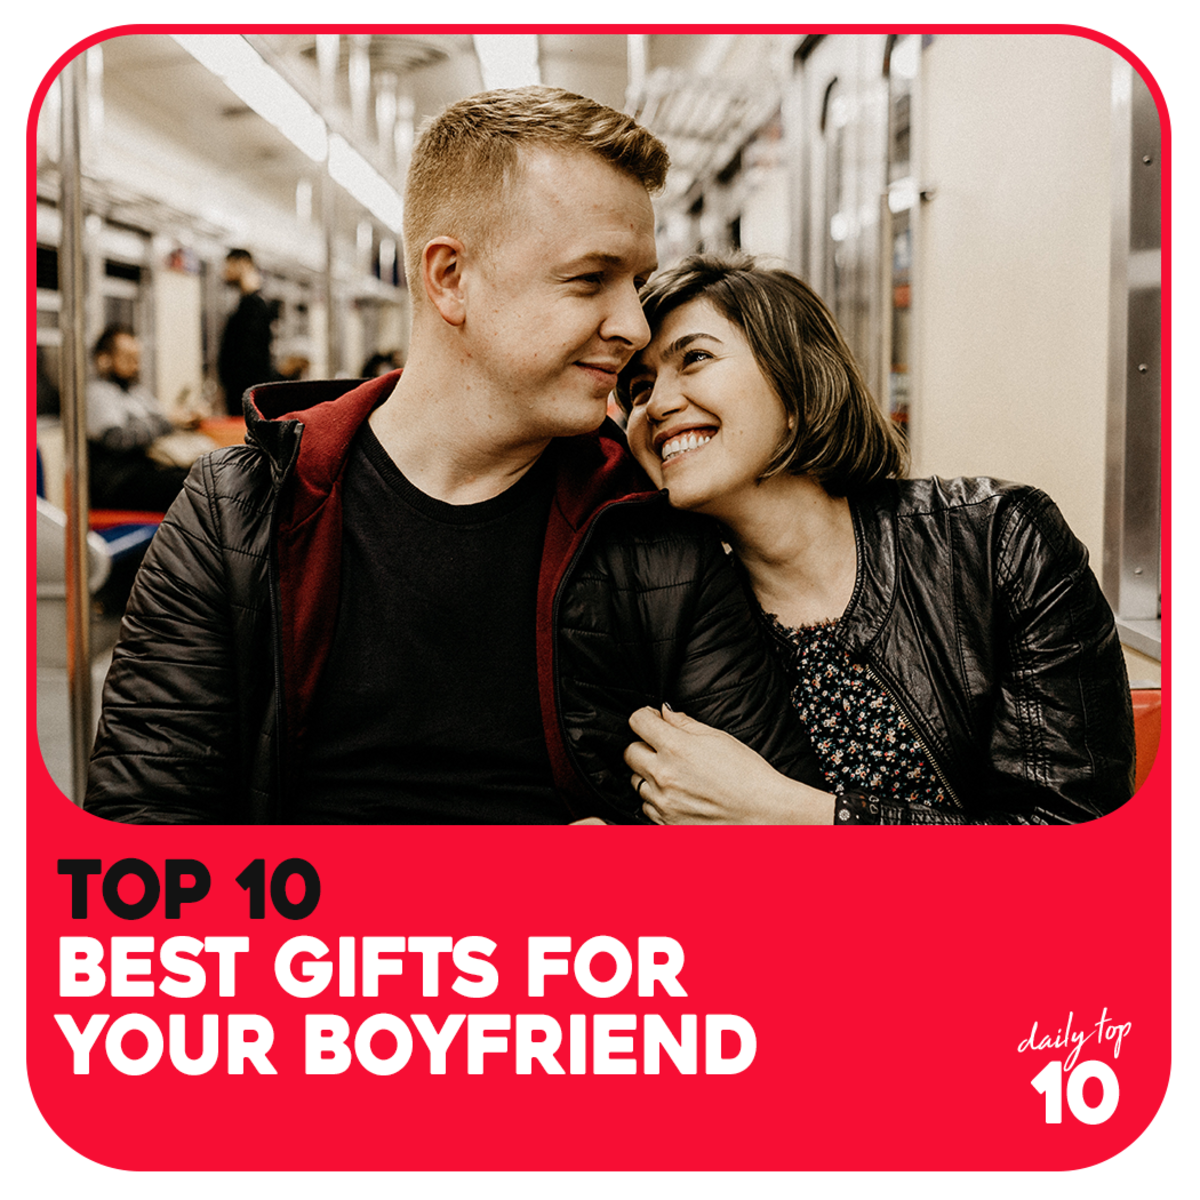 Top 10 Best Gifts for Your Boyfriend for Christmas, Anniversary, or Just Because